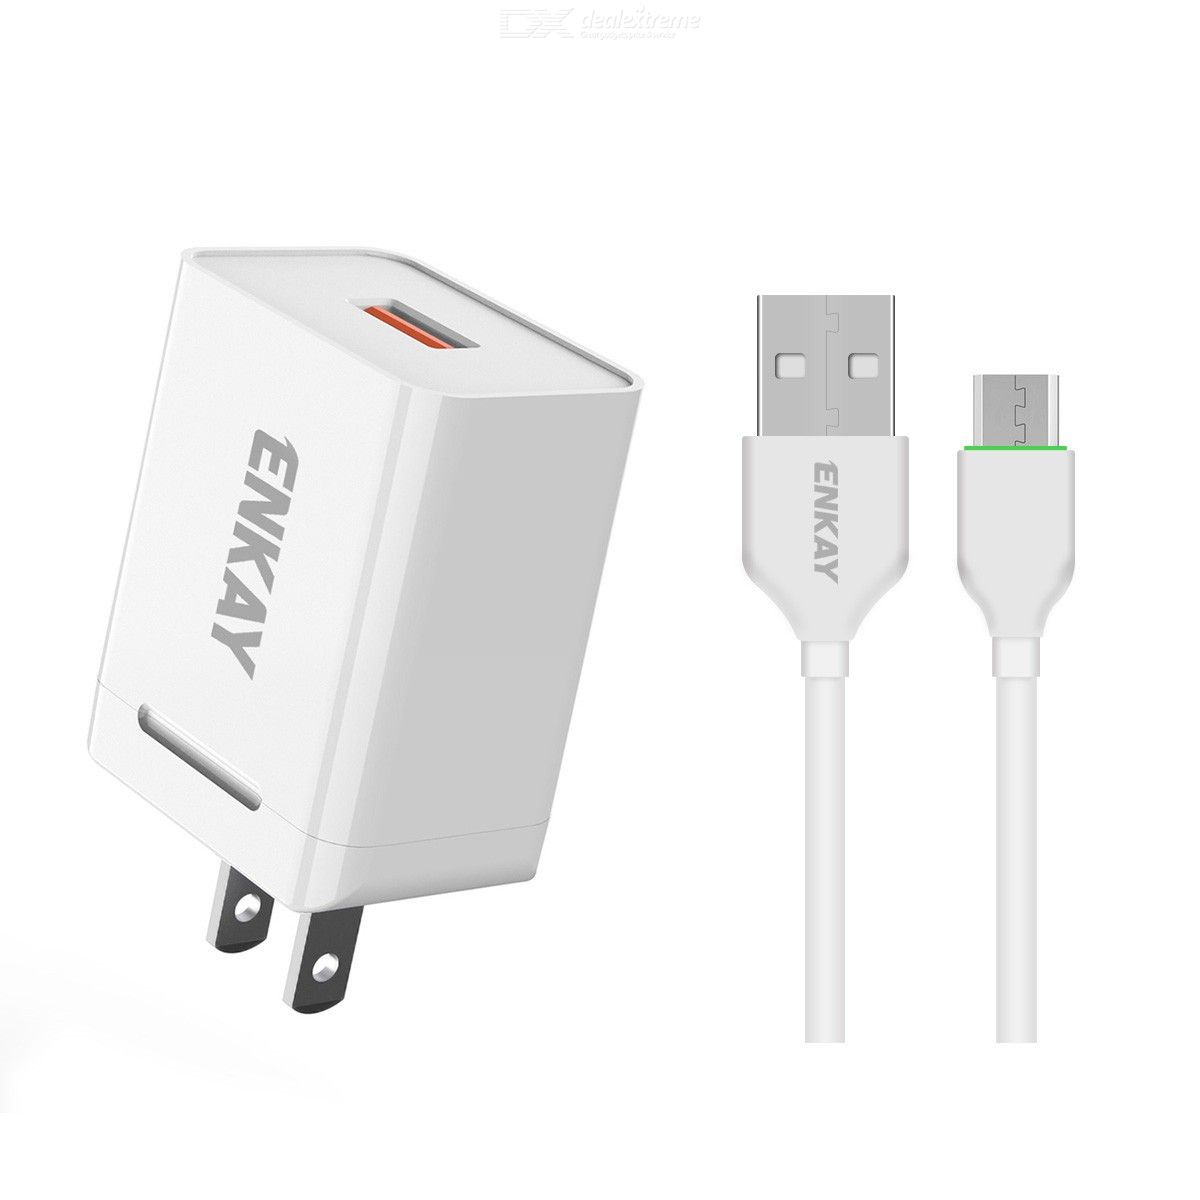 Hat-prince enkay 18w usb power adapter qc3.0 pd super fast charging us plug portable travel charger with type-c cable